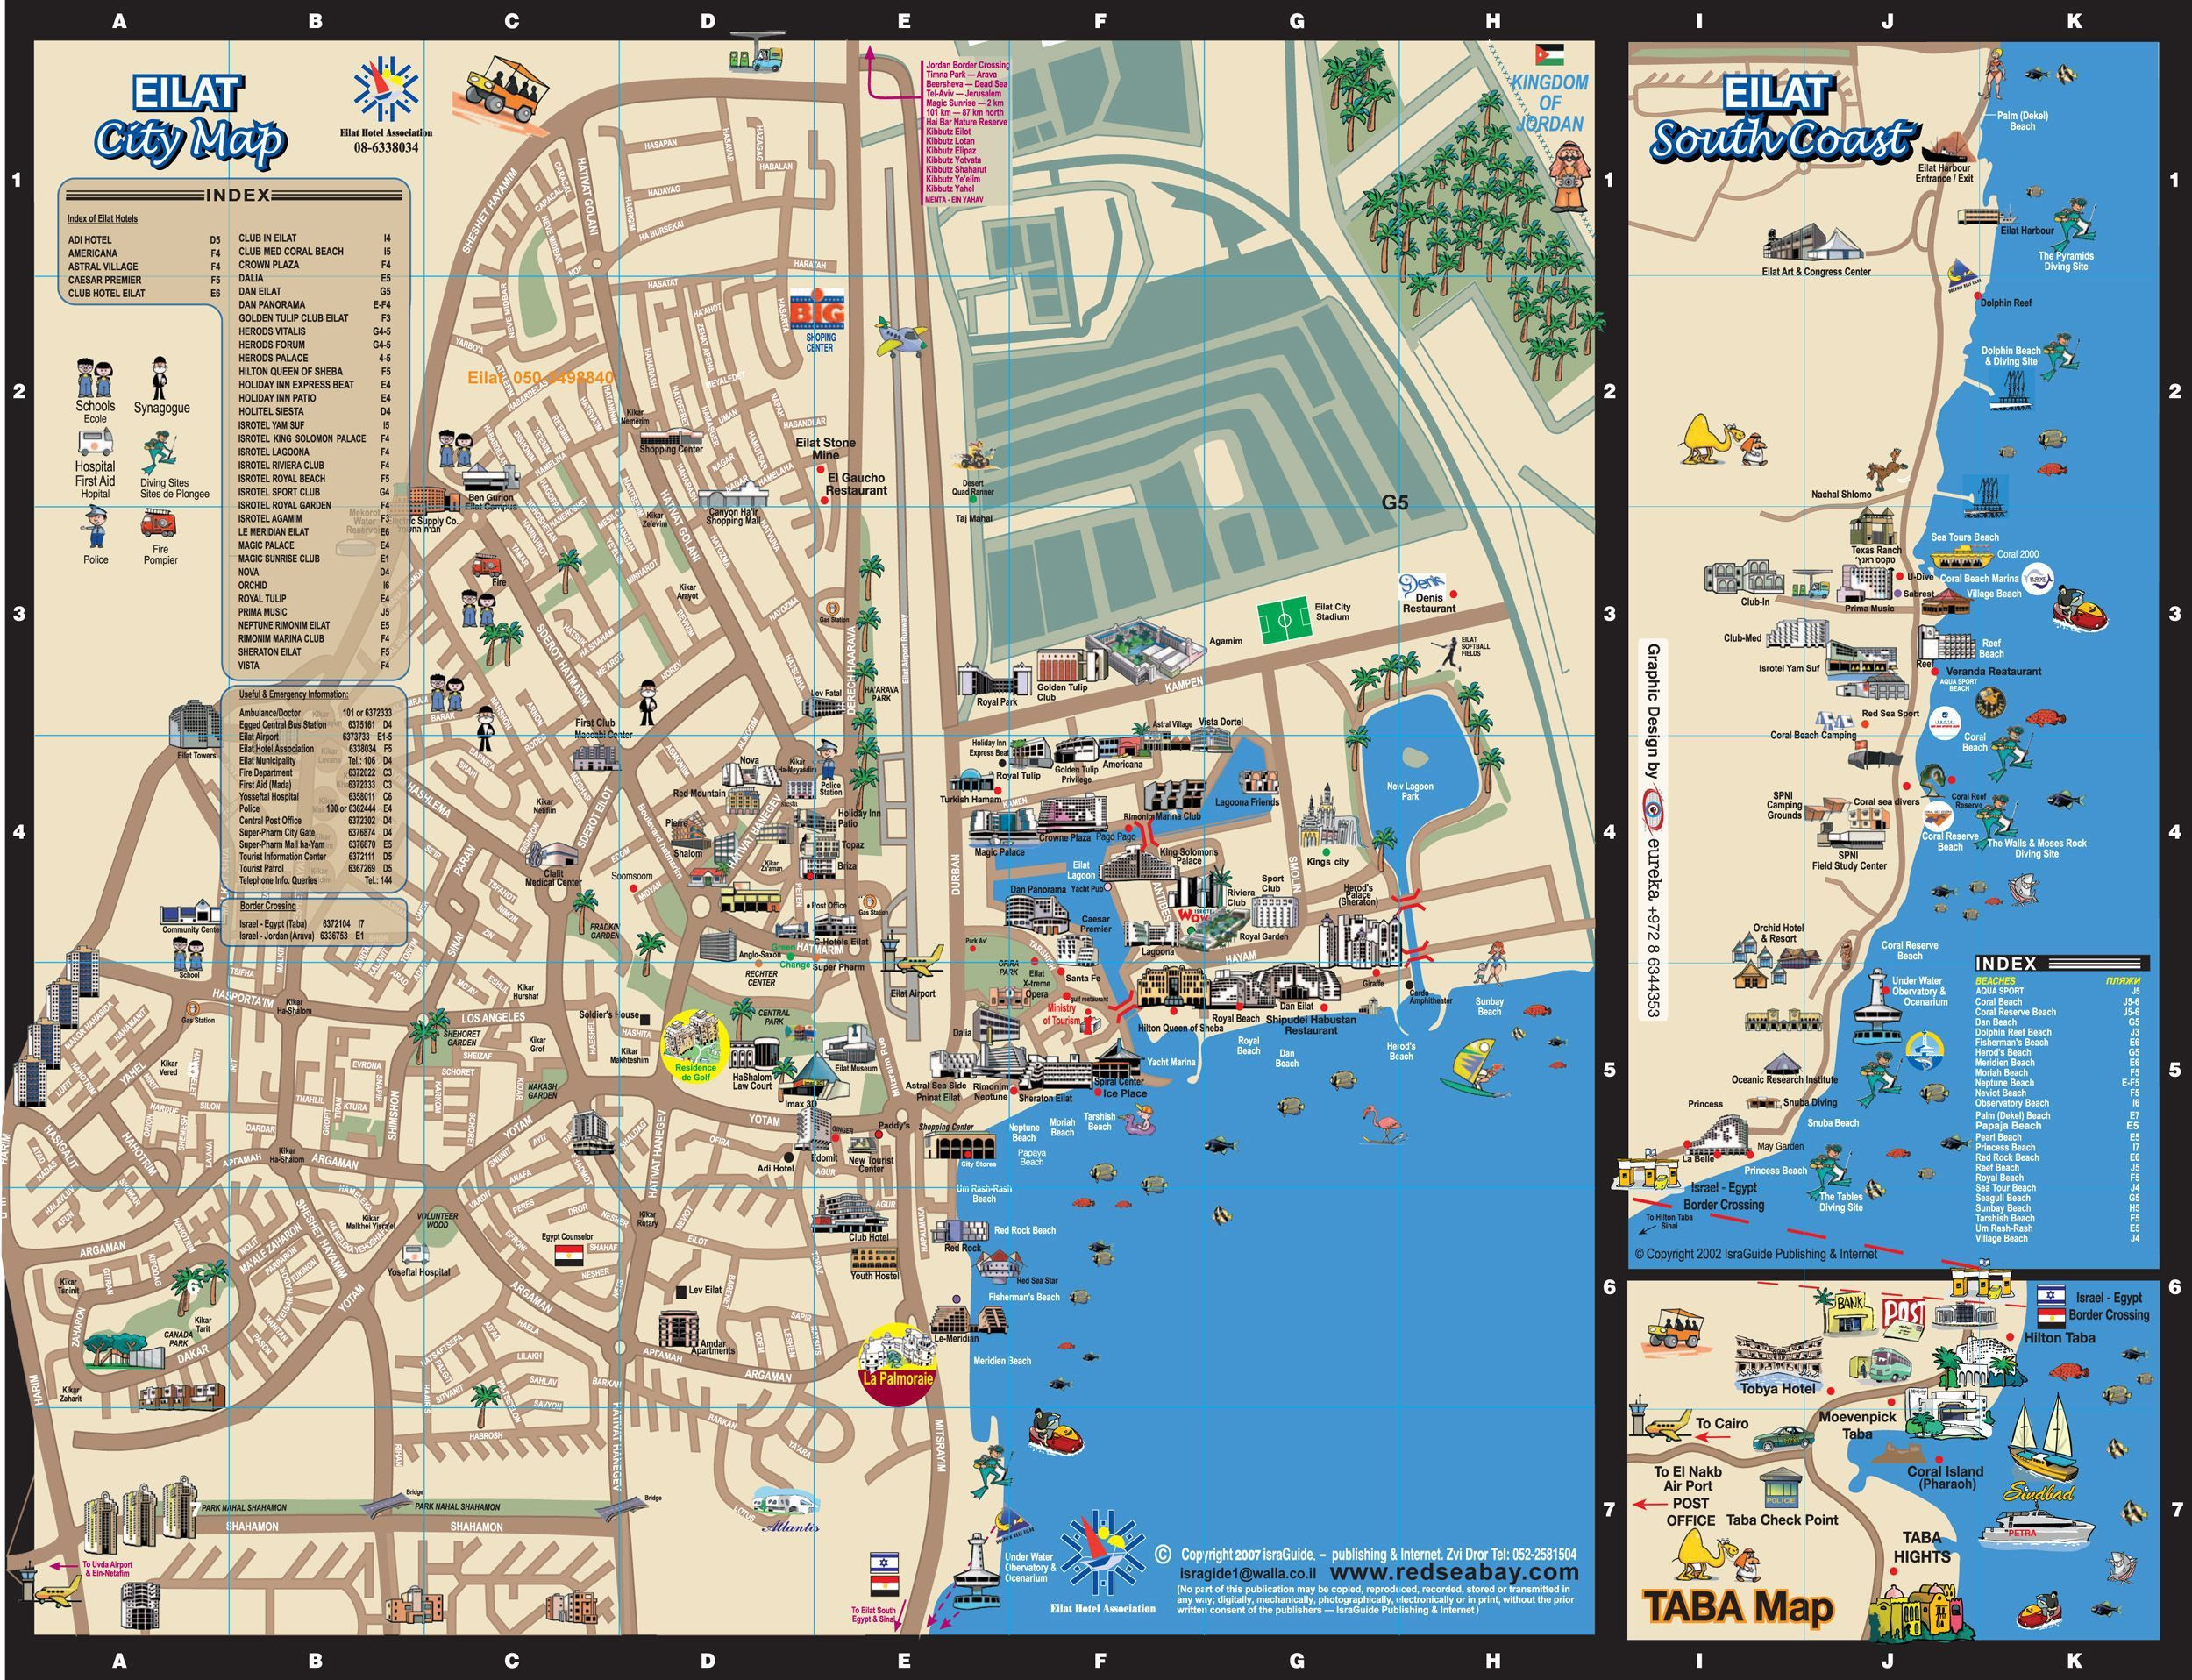 Maps for Eilat | Touring Guides in Israel | Pinterest | Eilat and Israel